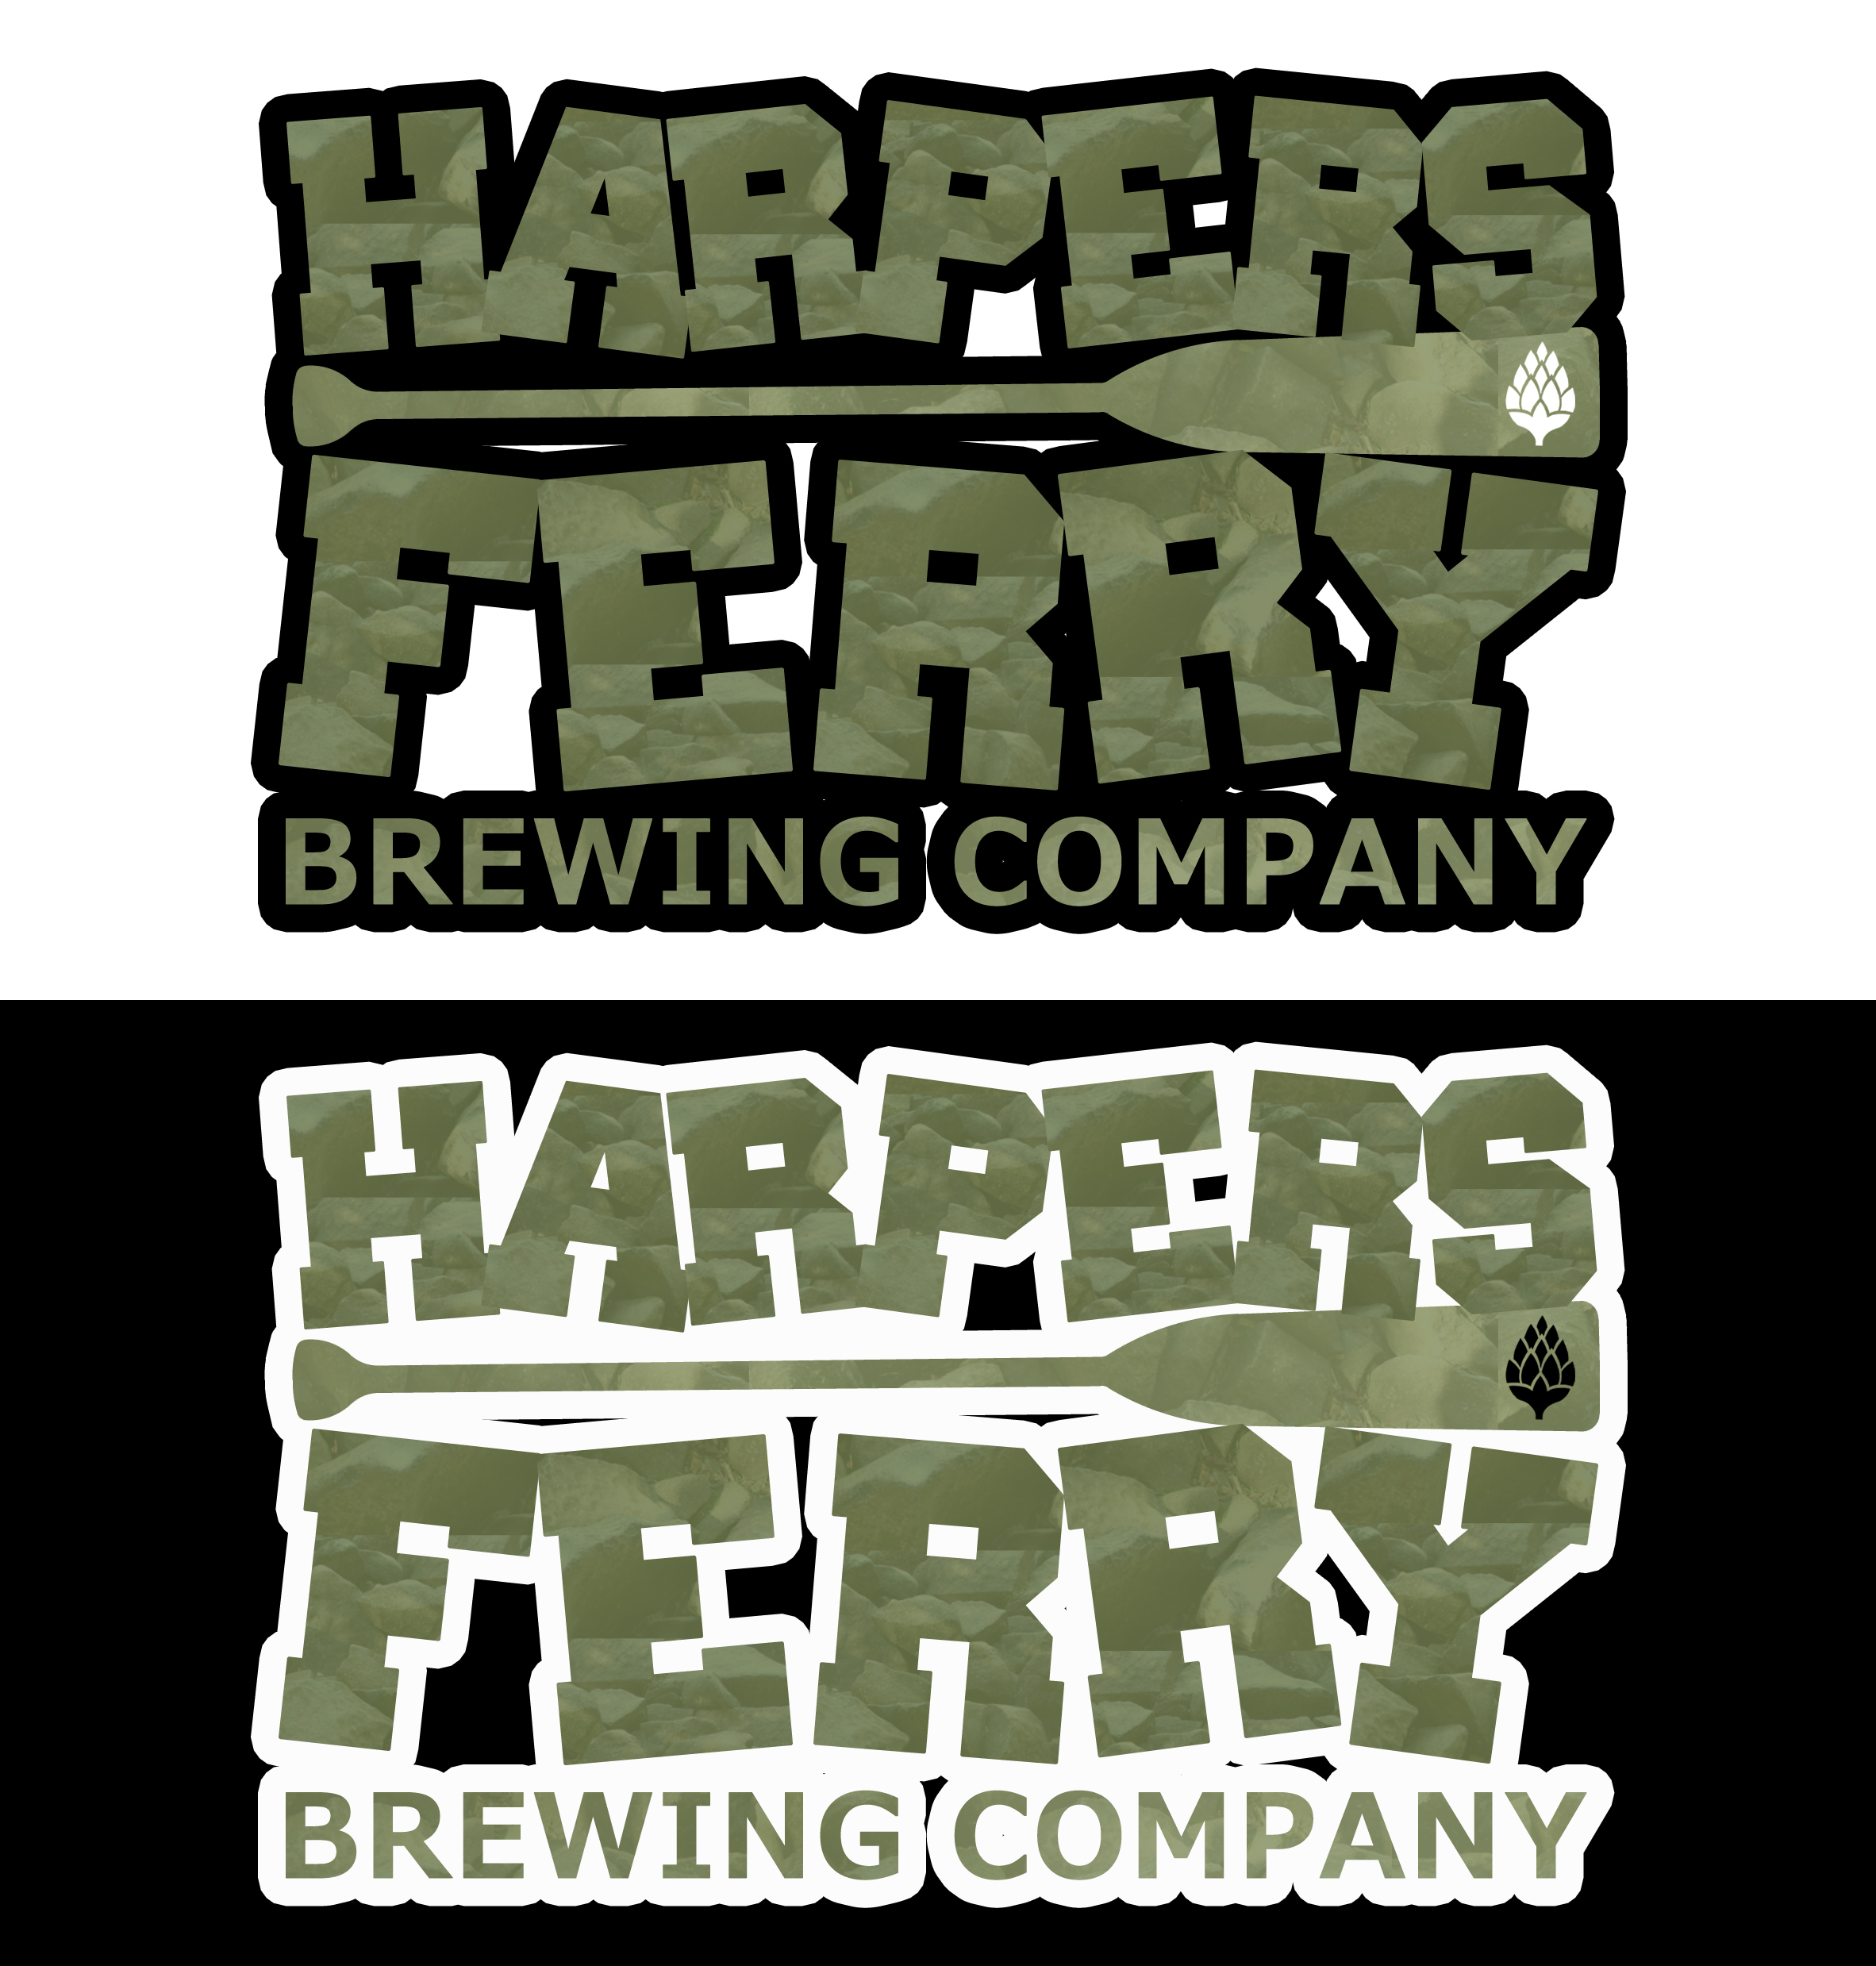 Logo Design by JSDESIGNGROUP - Entry No. 111 in the Logo Design Contest Unique Logo Design Wanted for Harpers ferry brewing company.